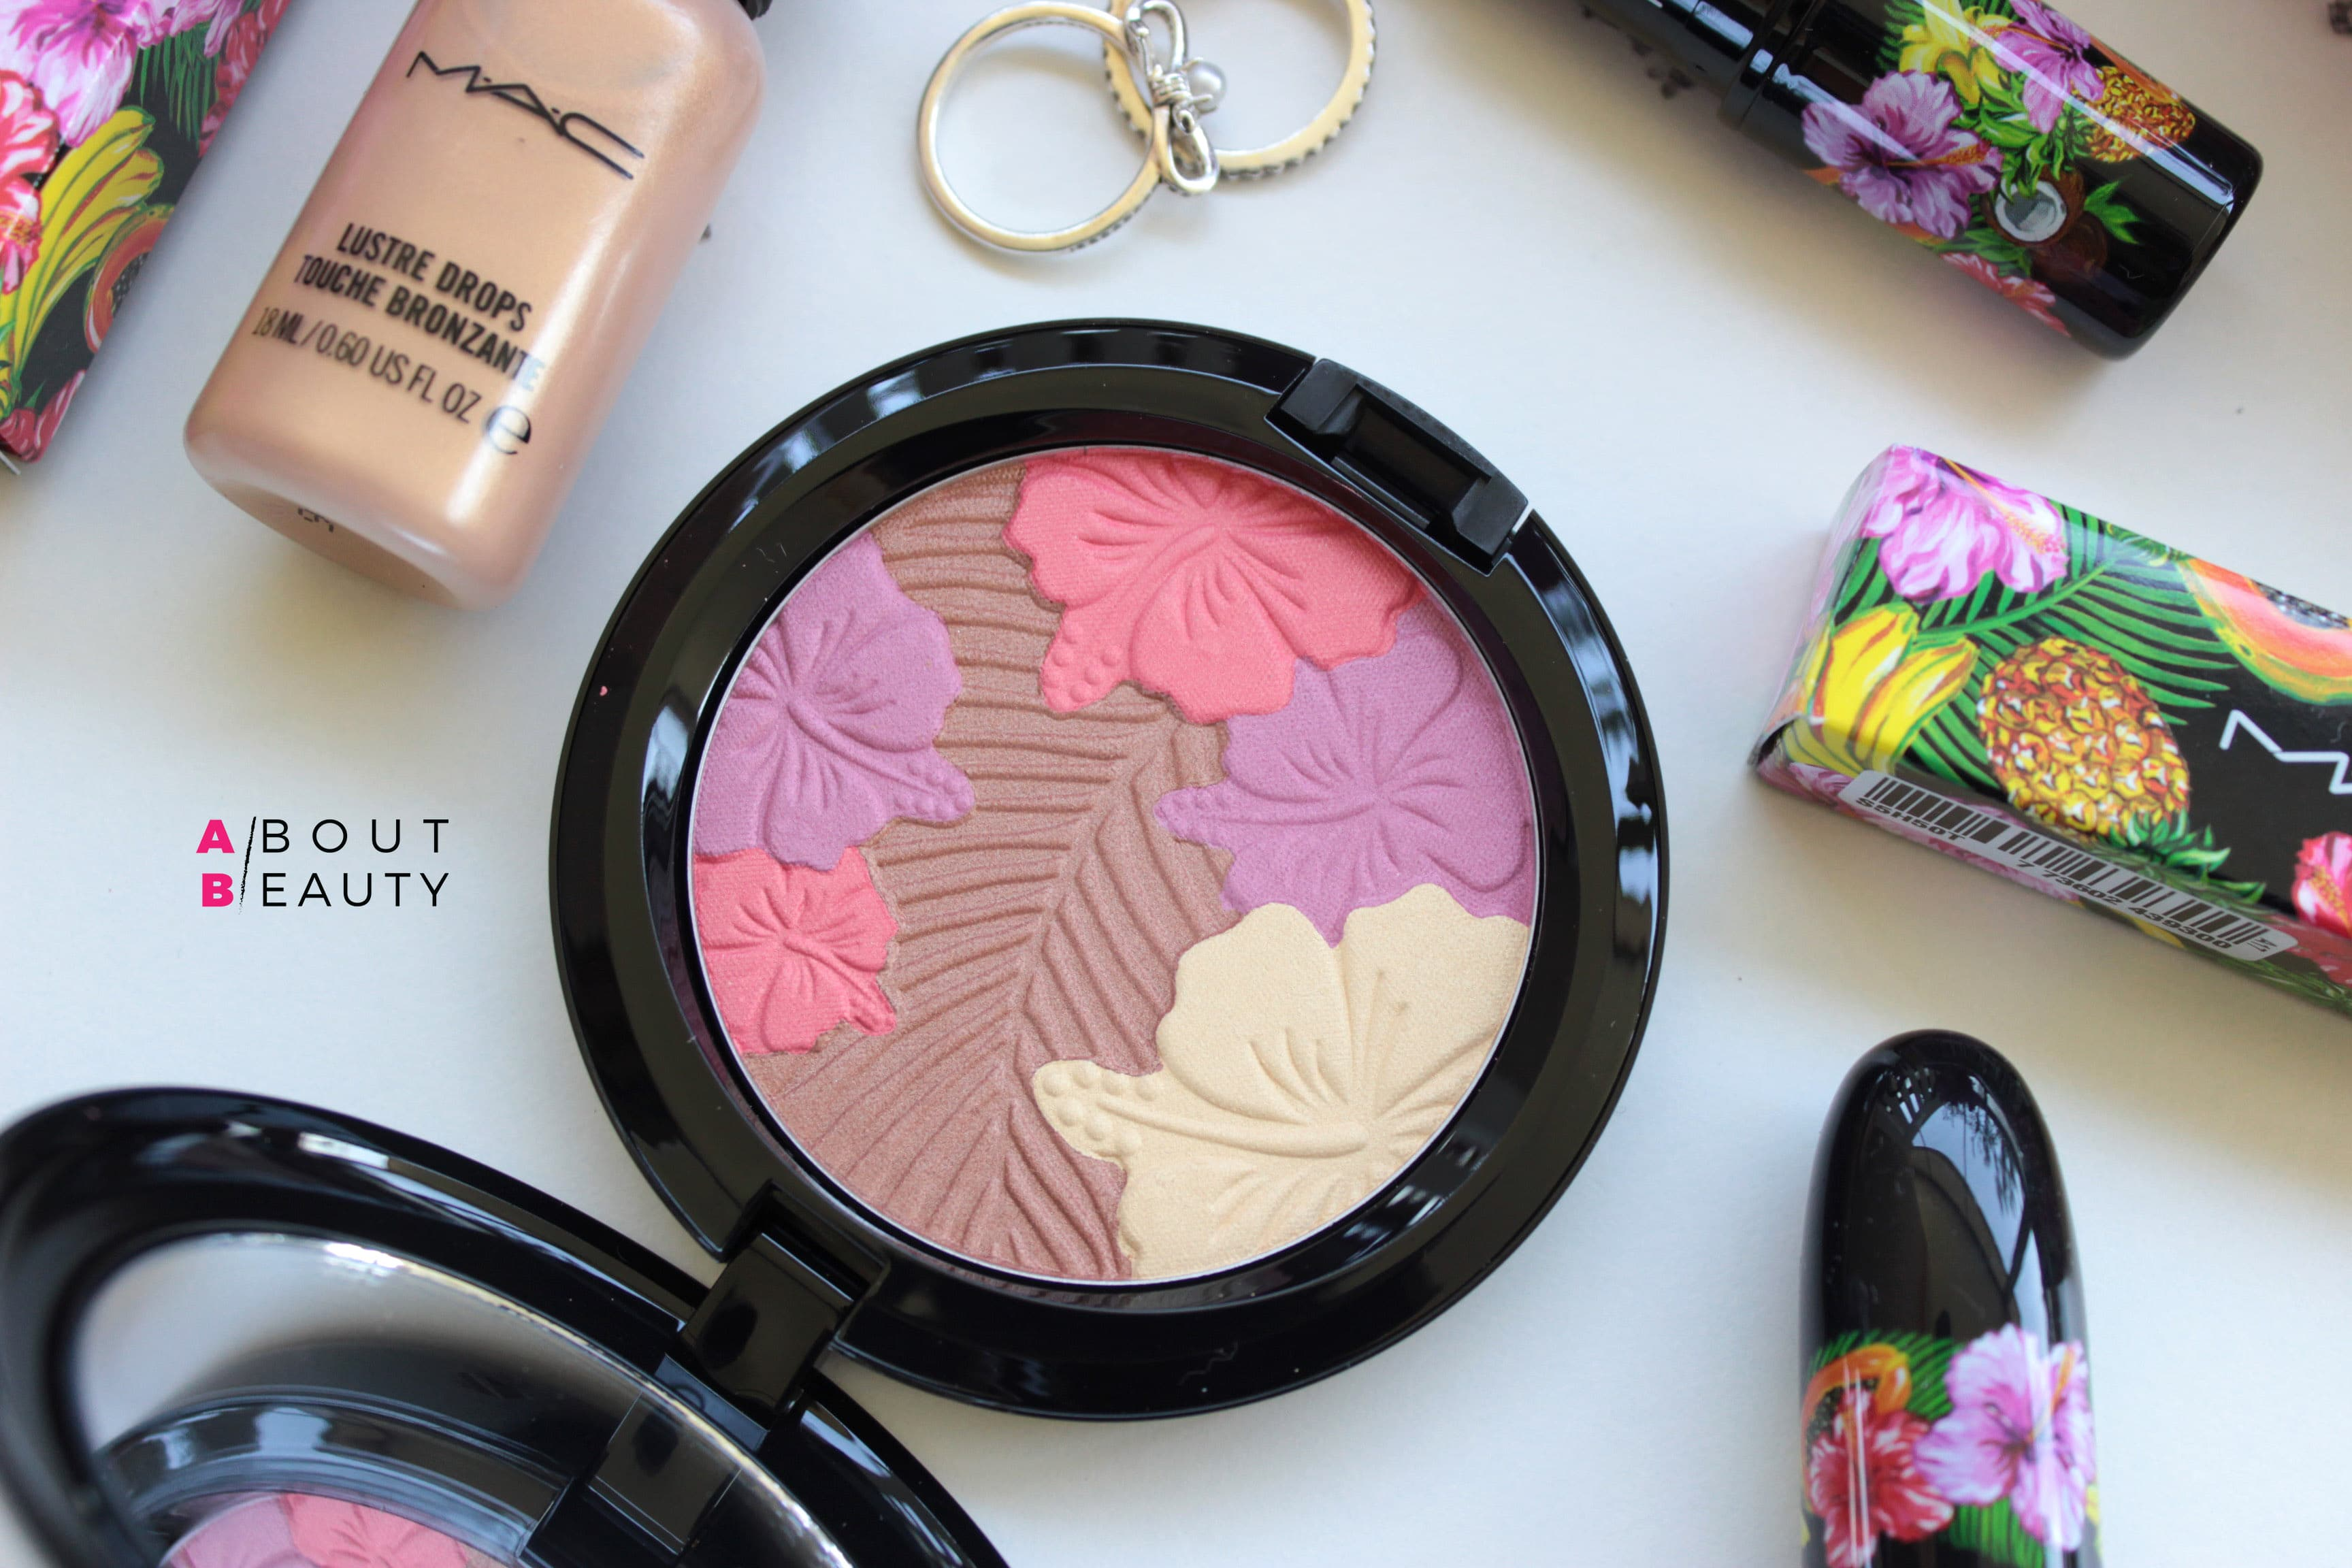 MAC Fruity Juicy Pearlmatte Face Powder - Review, Swatch, opinioni e comparazioni della polvere viso Pearlmatte Face Powder Oh My Passion! in limited edition